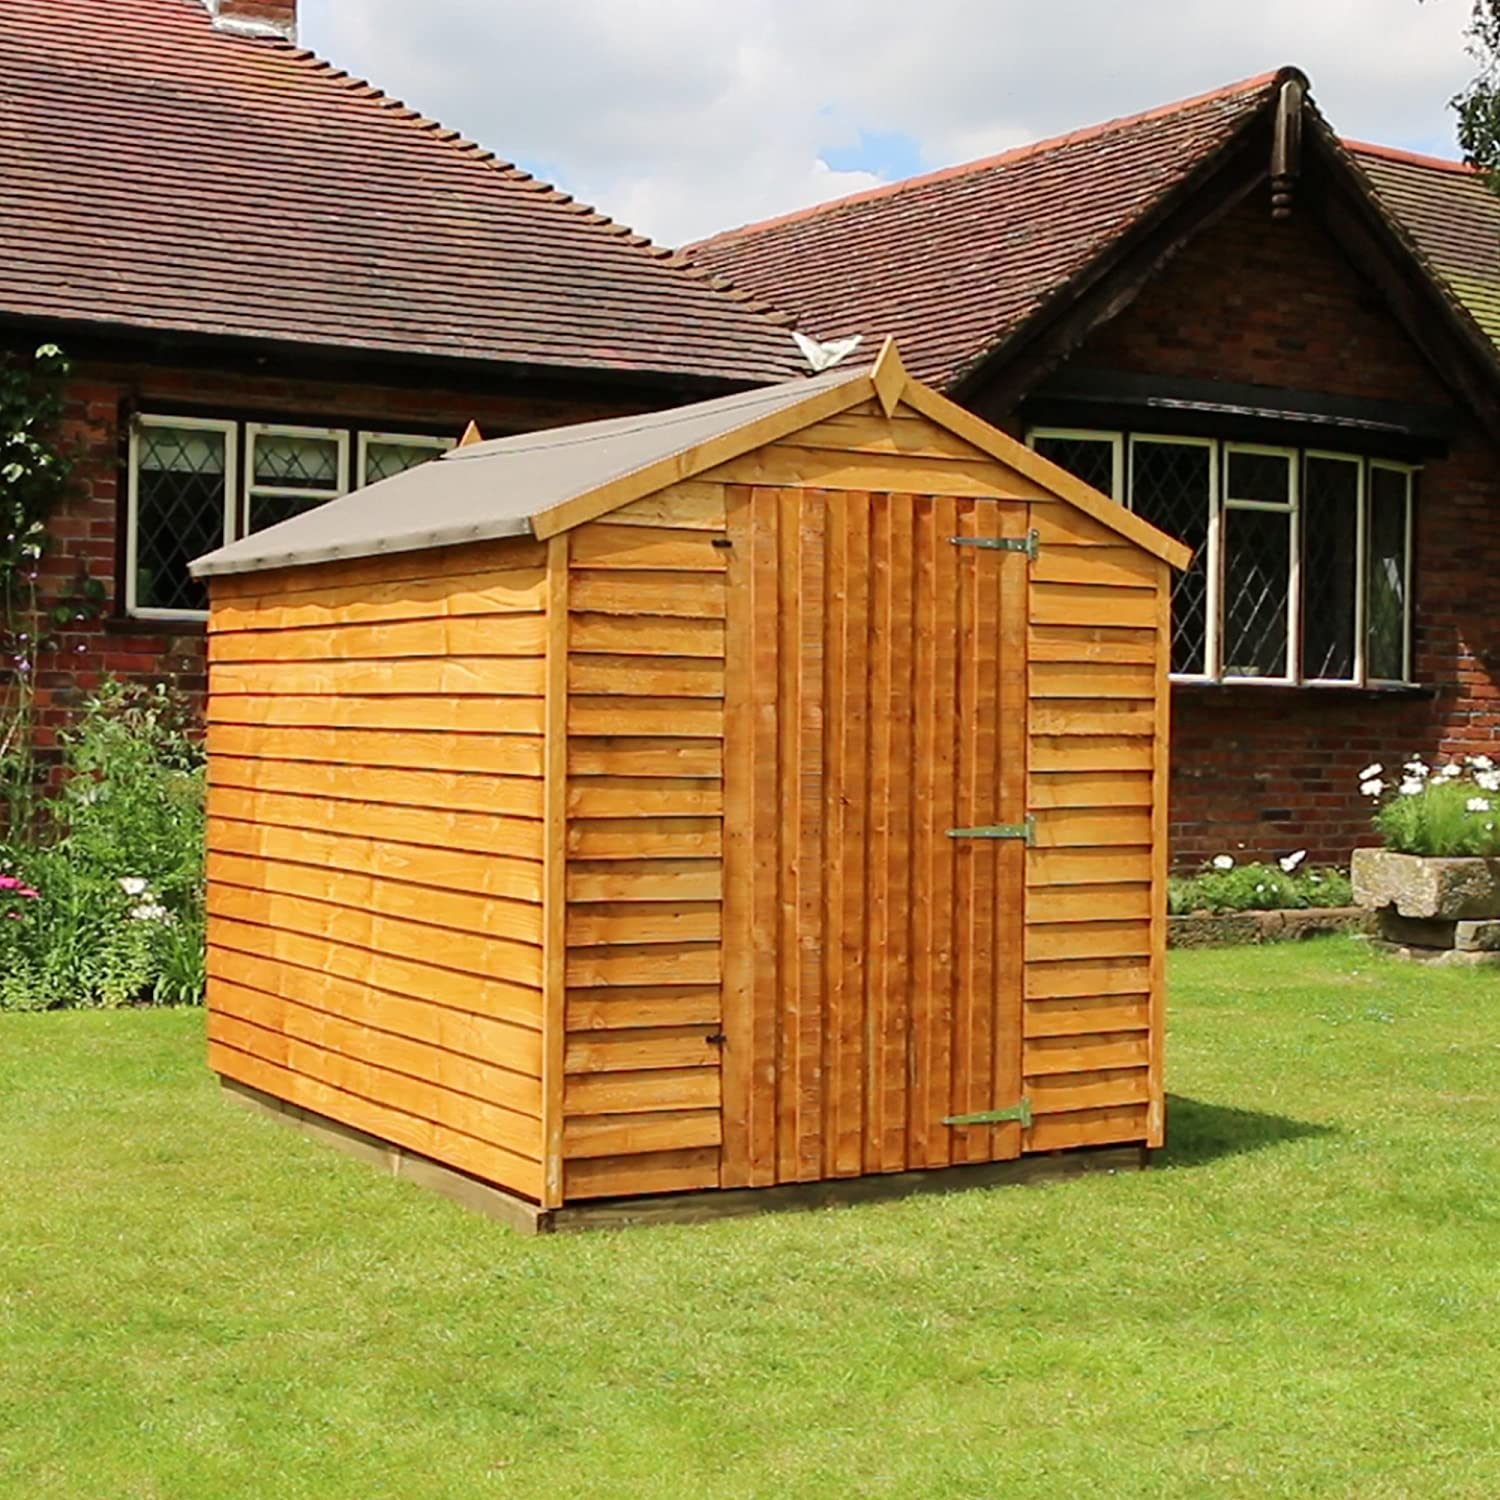 garden epages sheds bespoke sf wooden gb shed custom made en x